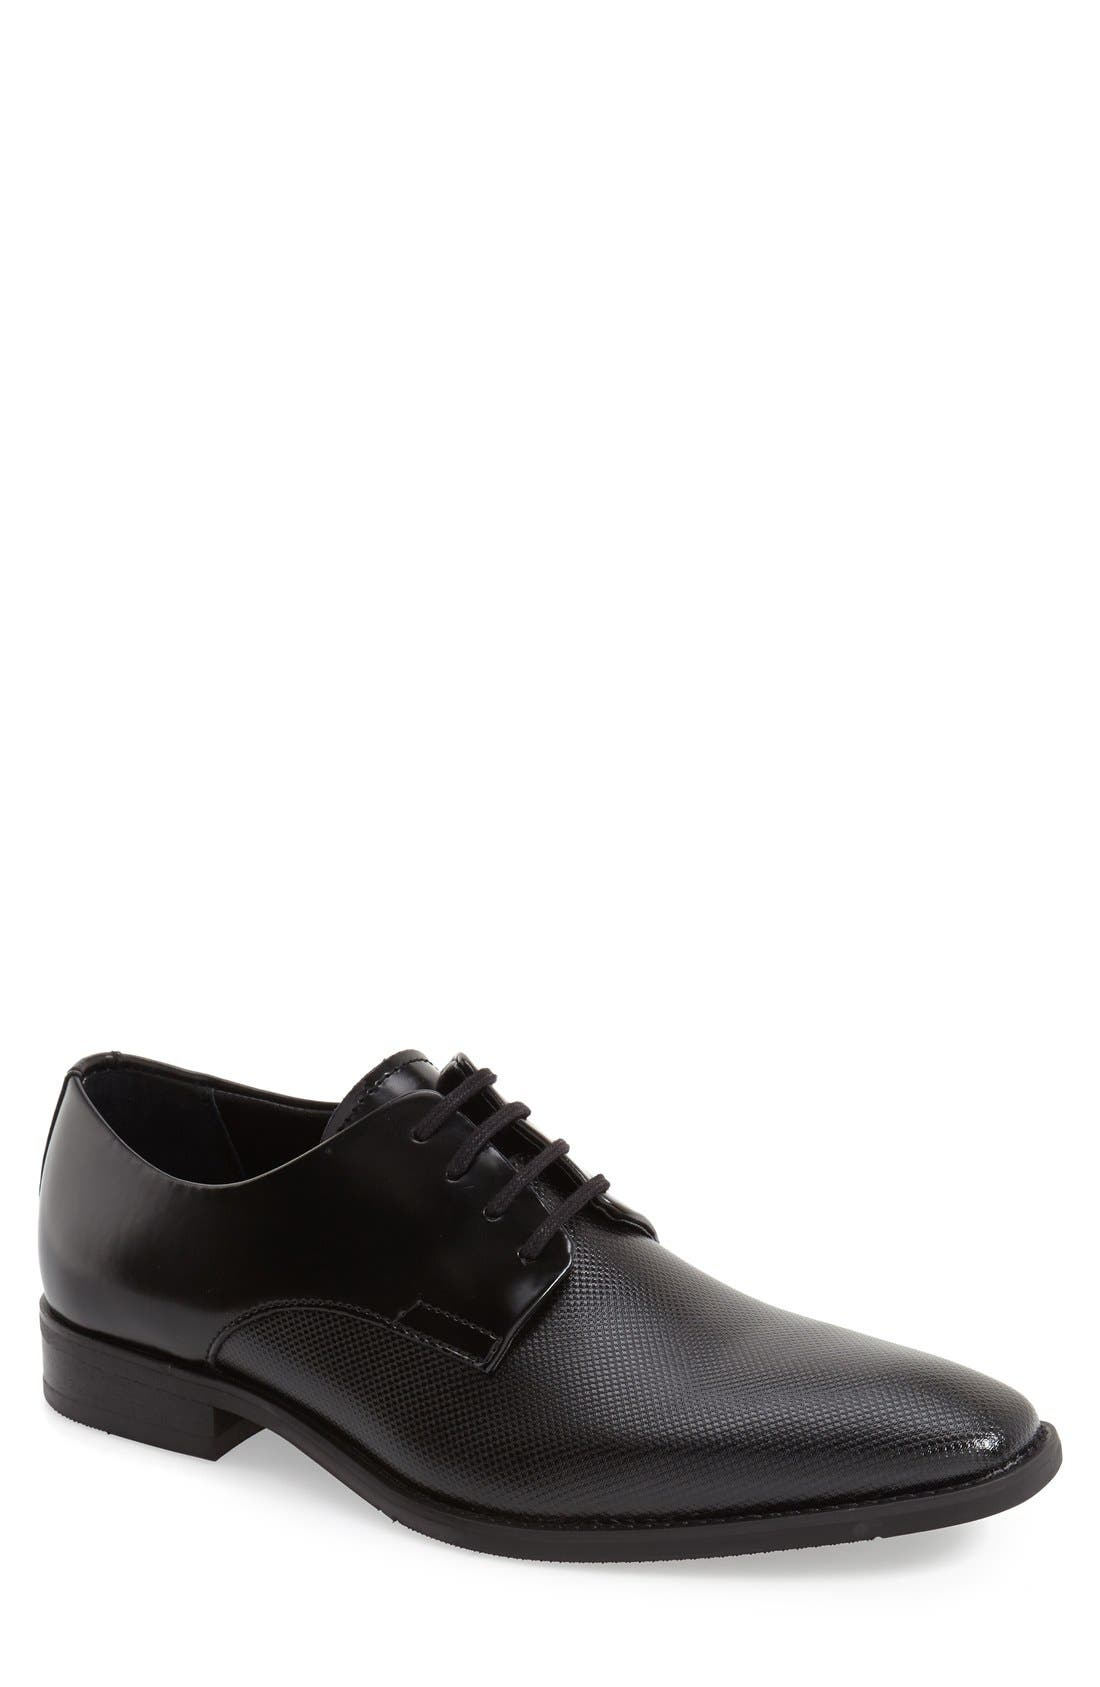 'Ramses' Plain Toe Derby,                         Main,                         color, Black Leather